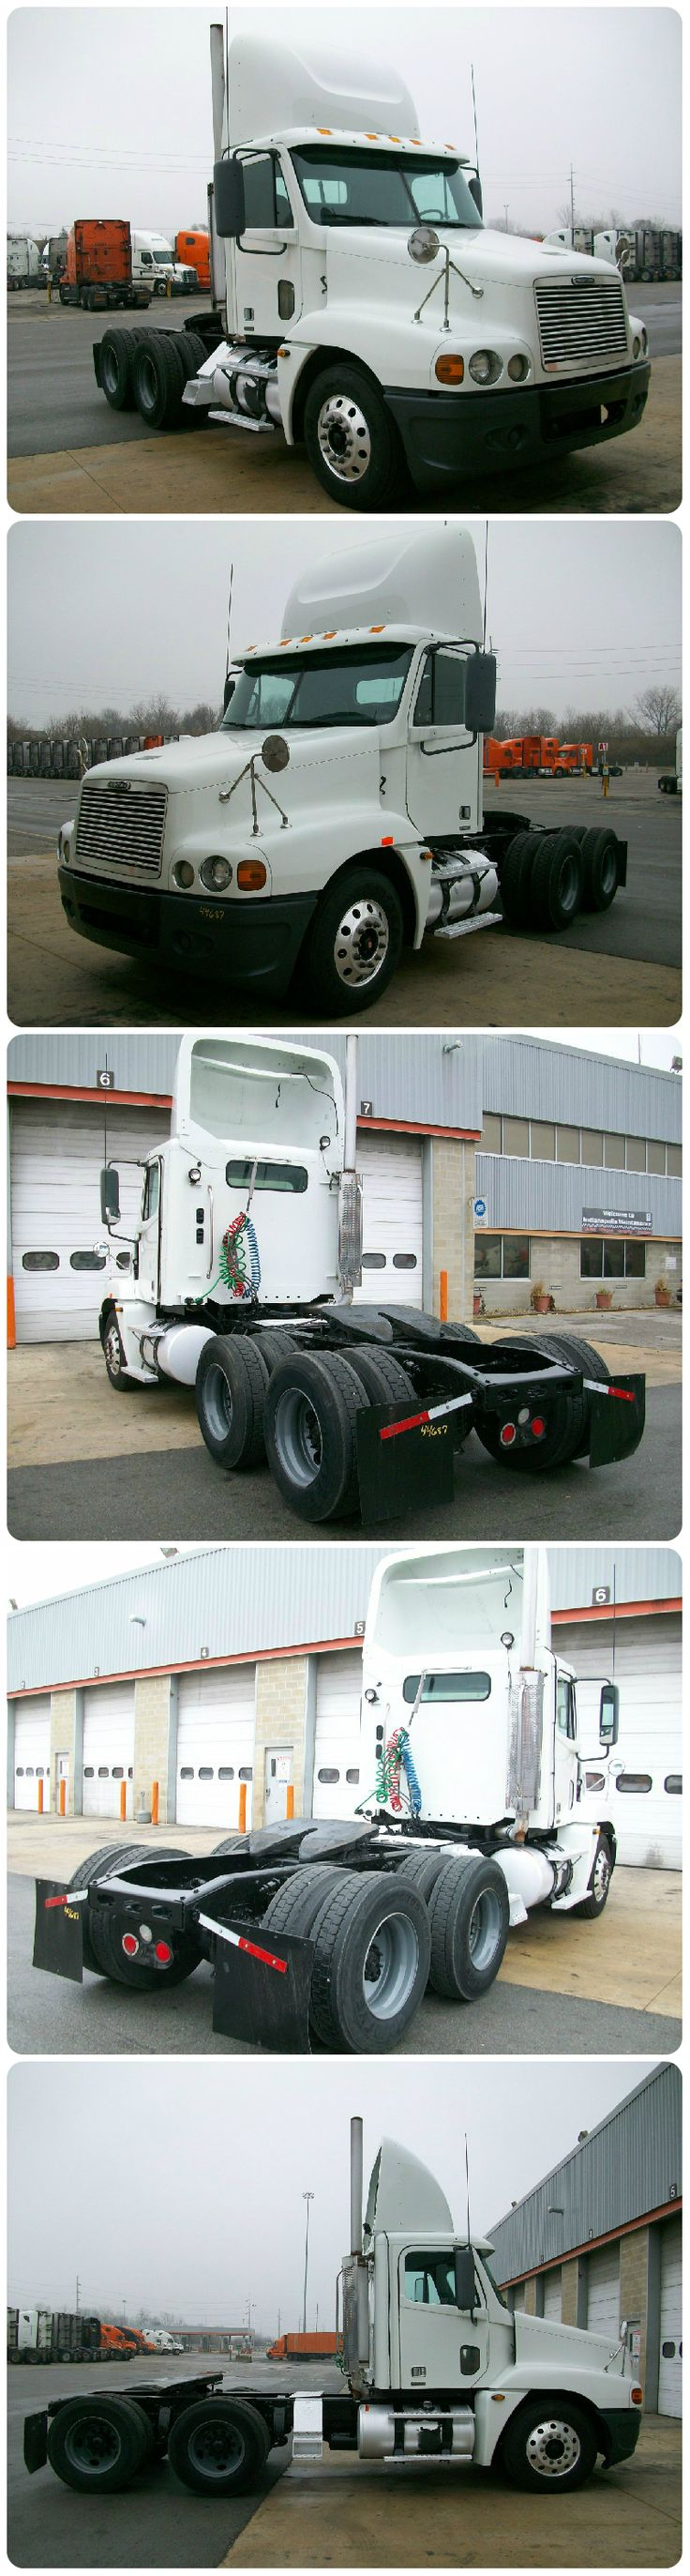 Clearance sale 06 freightliner c120 day cab w 559k miles was